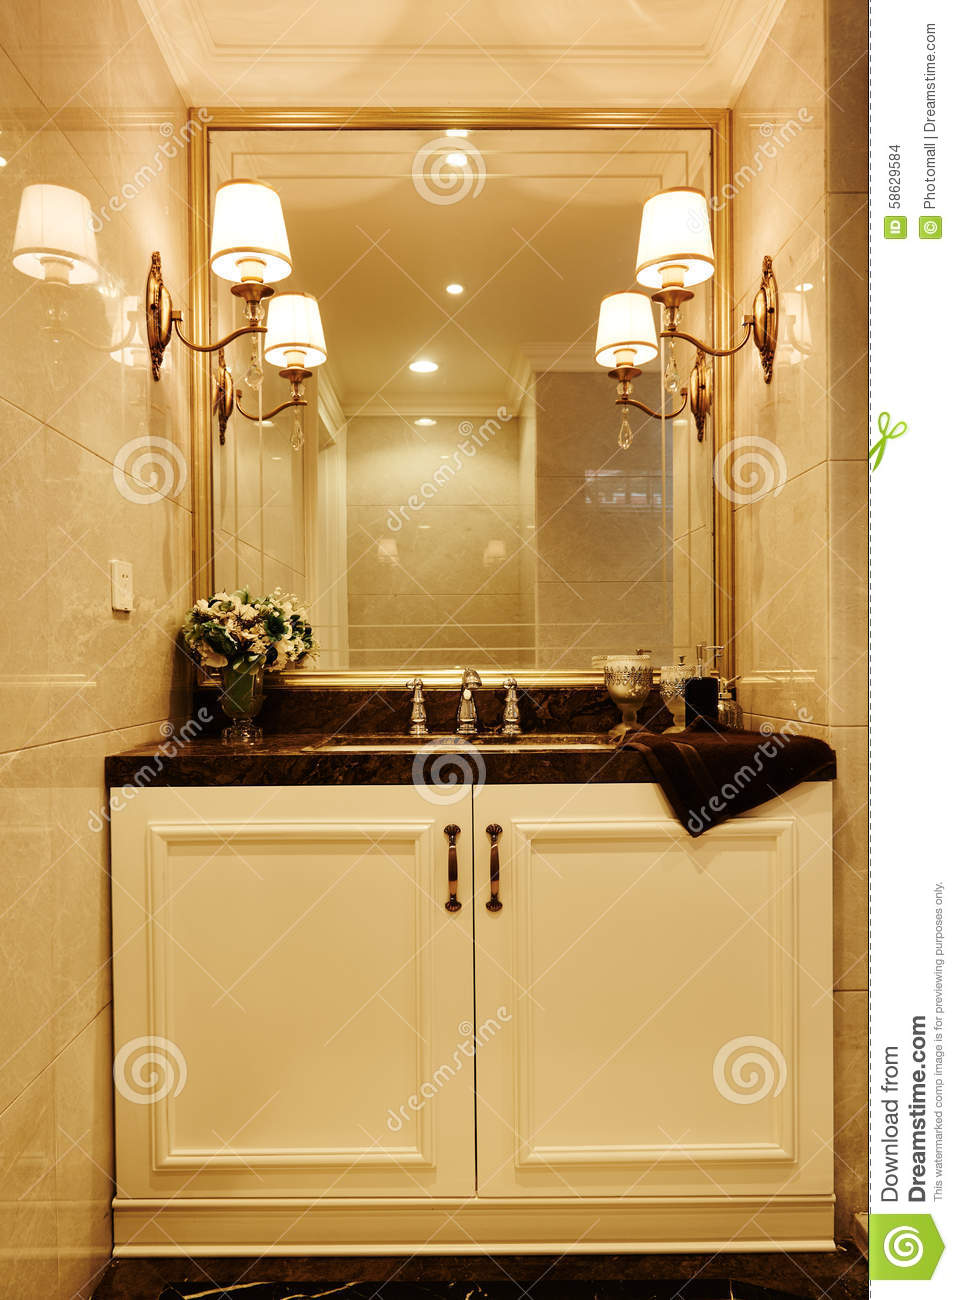 Modern Luxury Washroom Bathroom Stock Photo Image 58629584